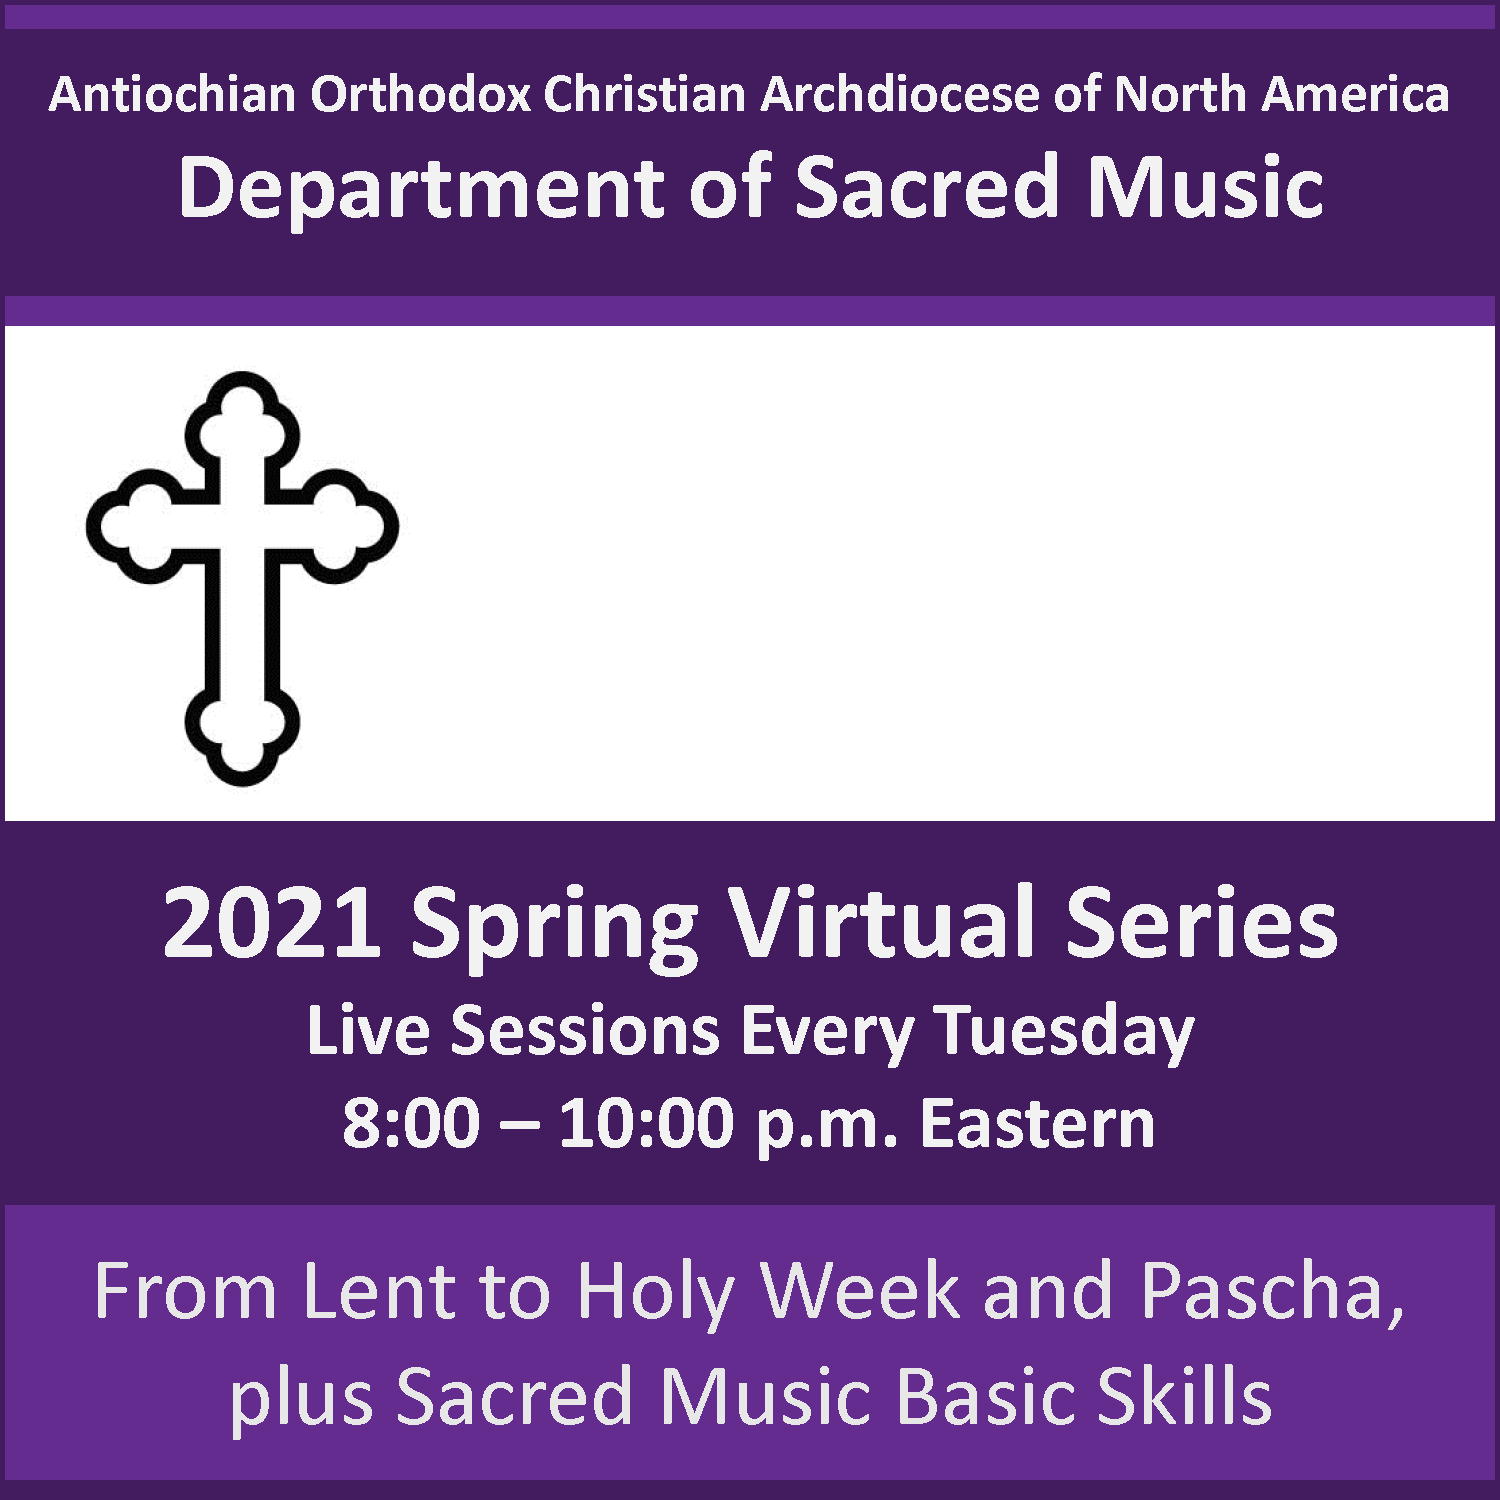 Department of Sacred Music Spring 2021